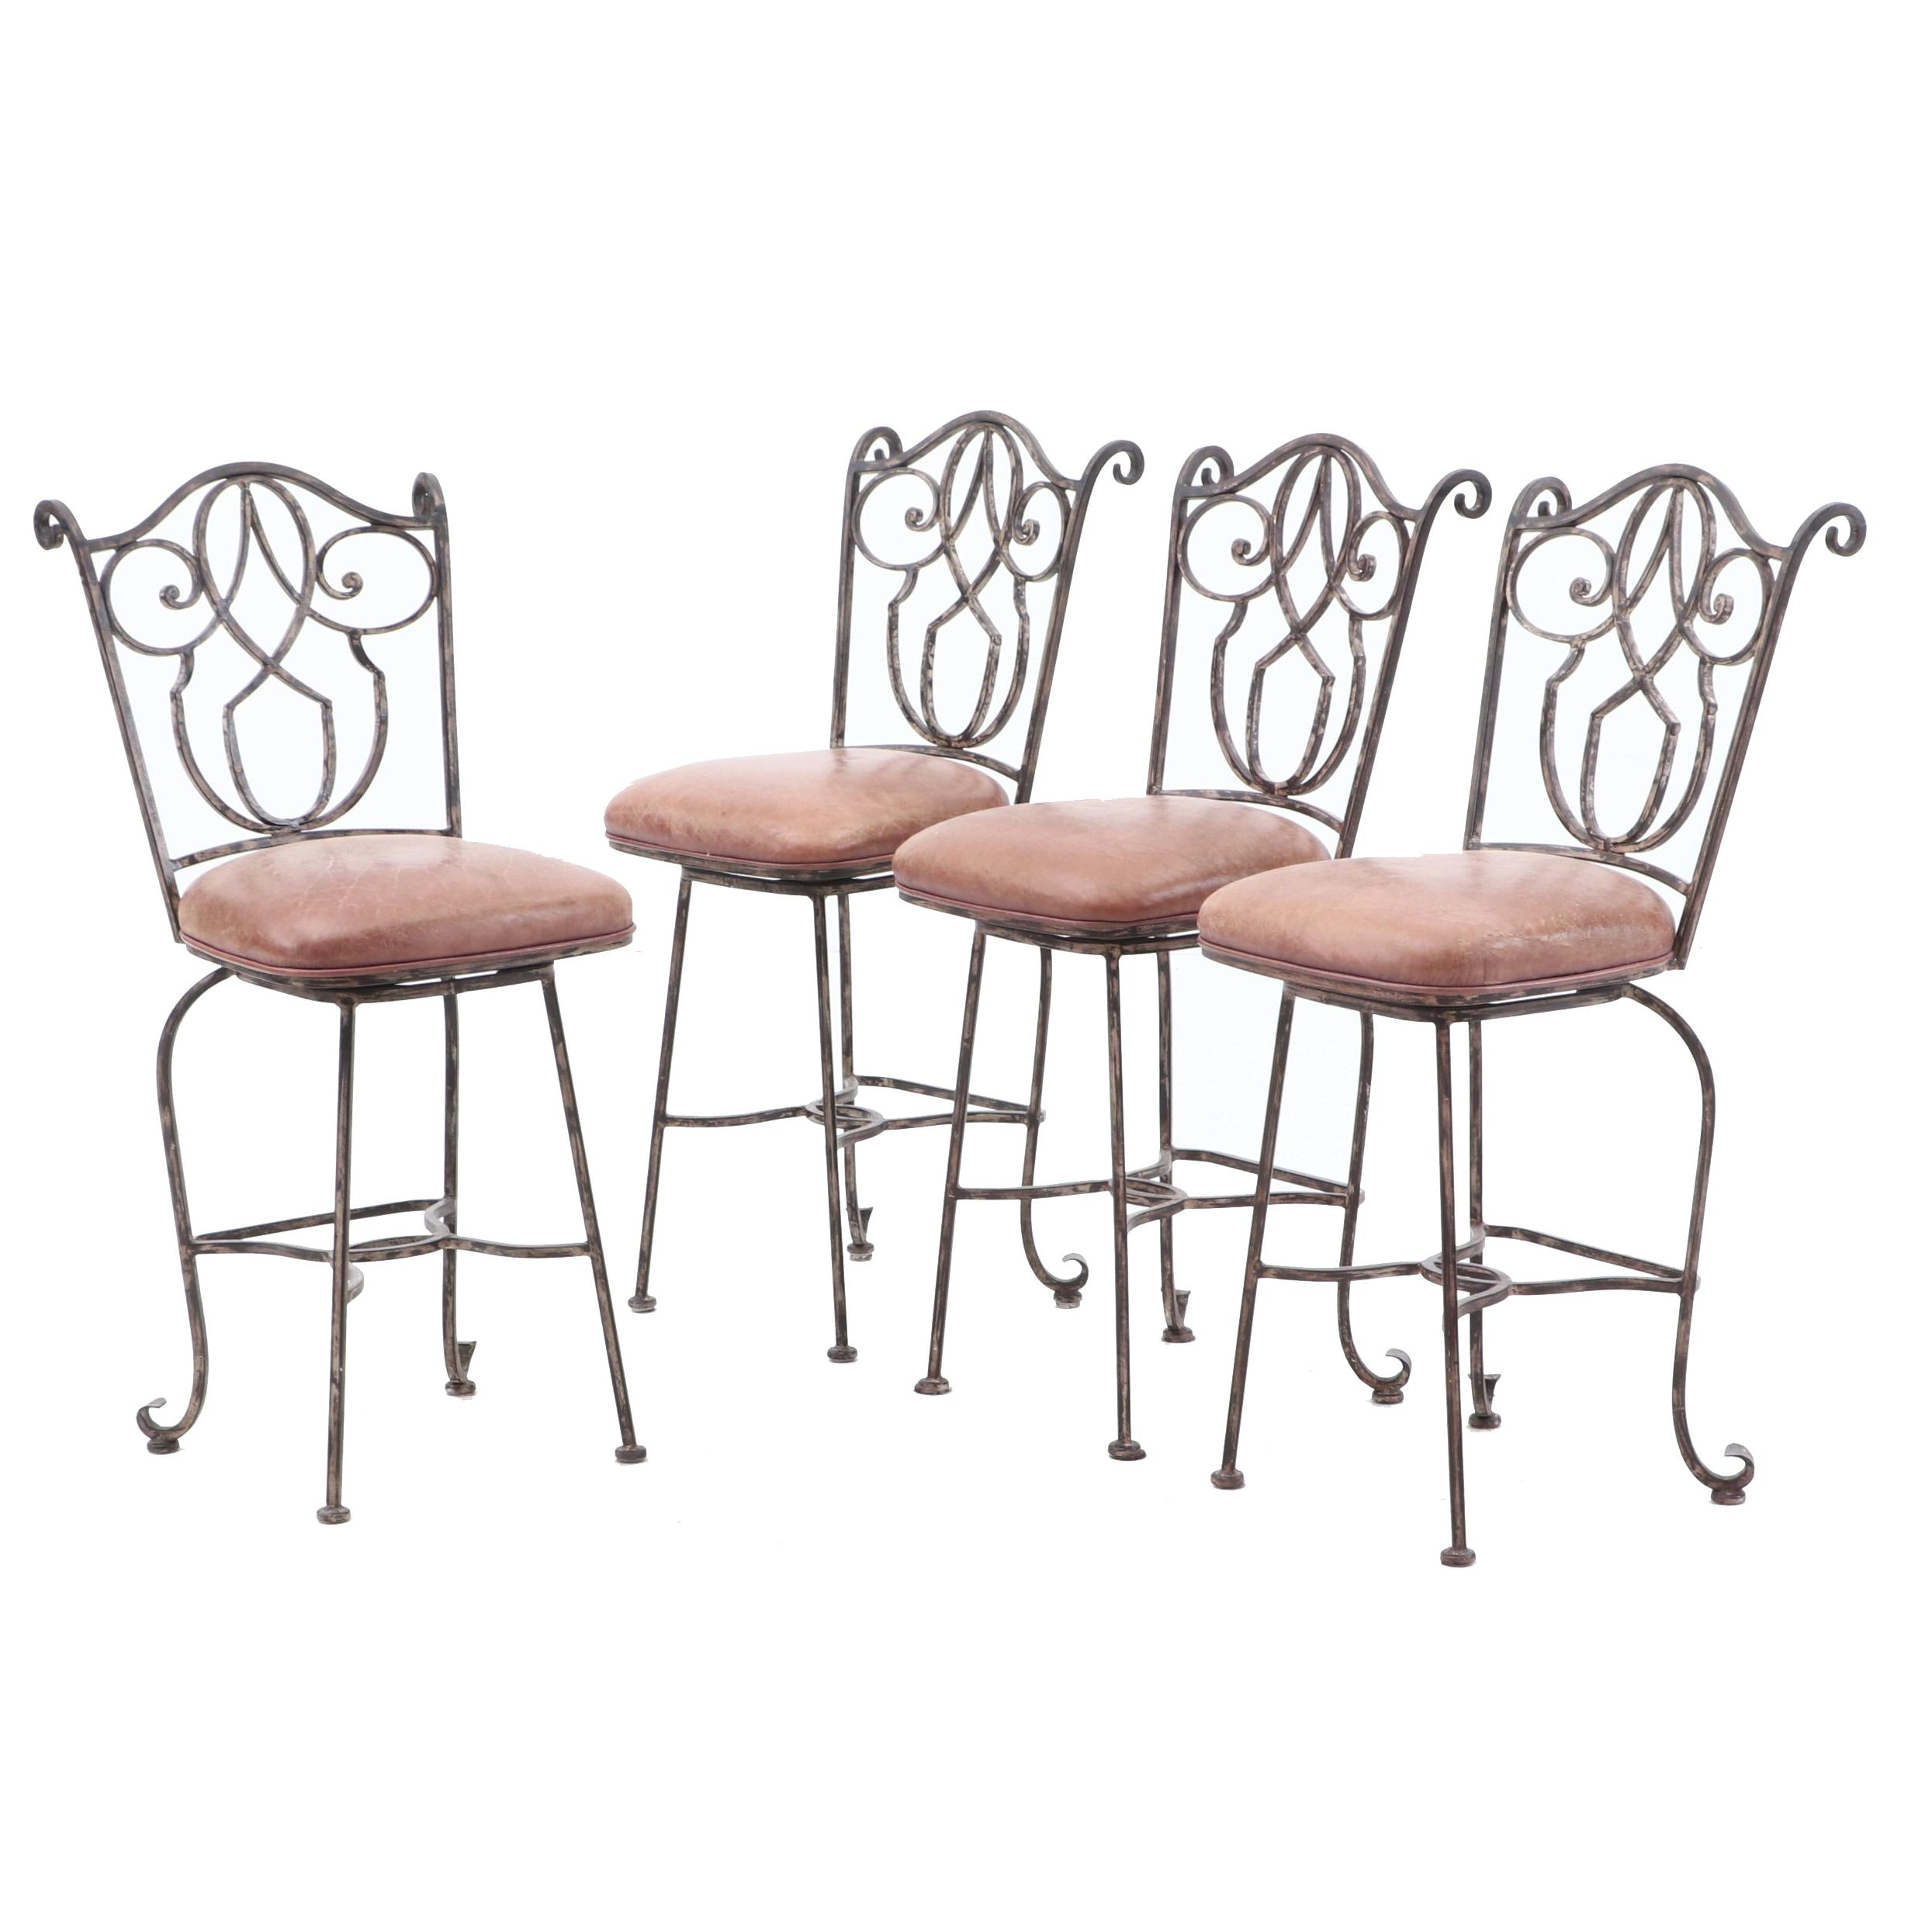 Four Wrought Iron Swivel Bar Stools